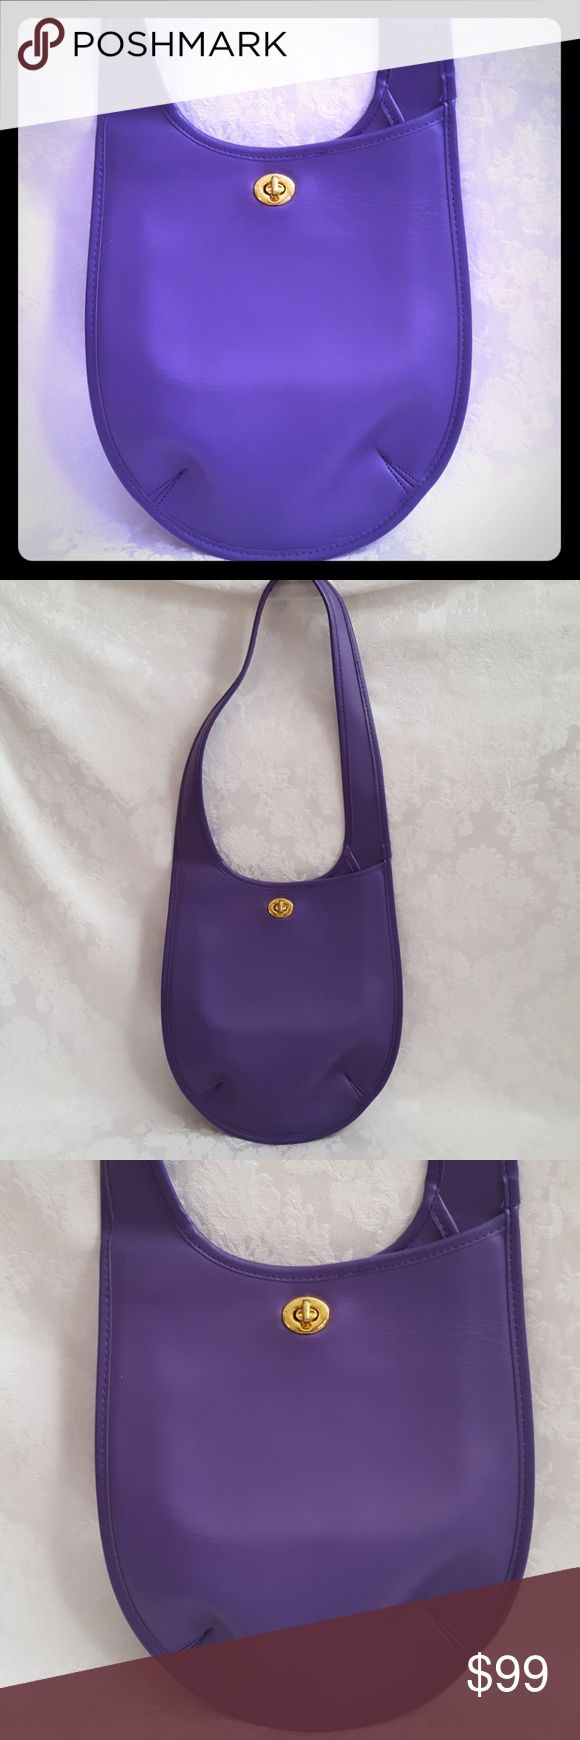 """Like New! Bright Purple Leather Shoulder Bag Purple shoulder bag. Feels like genuine leather with suede lining. No tag. Pic 5 shows suede. It isn't discolored, it's the different ways the suede was brushed. If not genuine leather then high quality material. Feels like classic high end bag. Thick & durable Made in Korea. Gold clasp  Measures approx 10"""" wide x 11"""" tall x 3"""" base. Handle adds 12 1/2"""" height. Excellent used condition. Solid color No discoloration. Discoloration on pics is my…"""